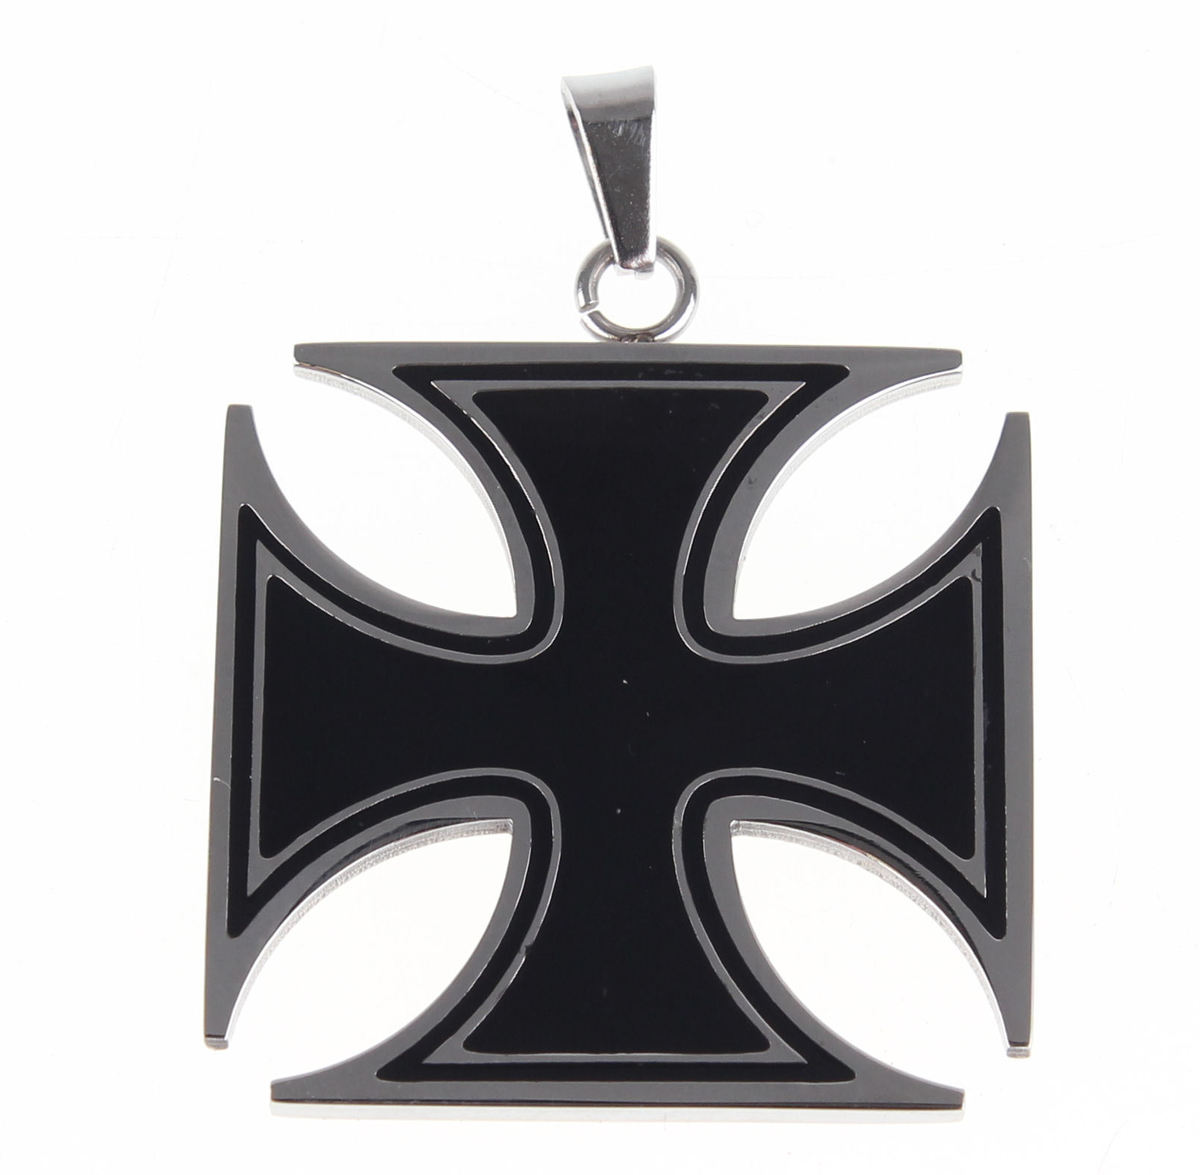 obojek ETNOX - Black Iron Cross - SK1125